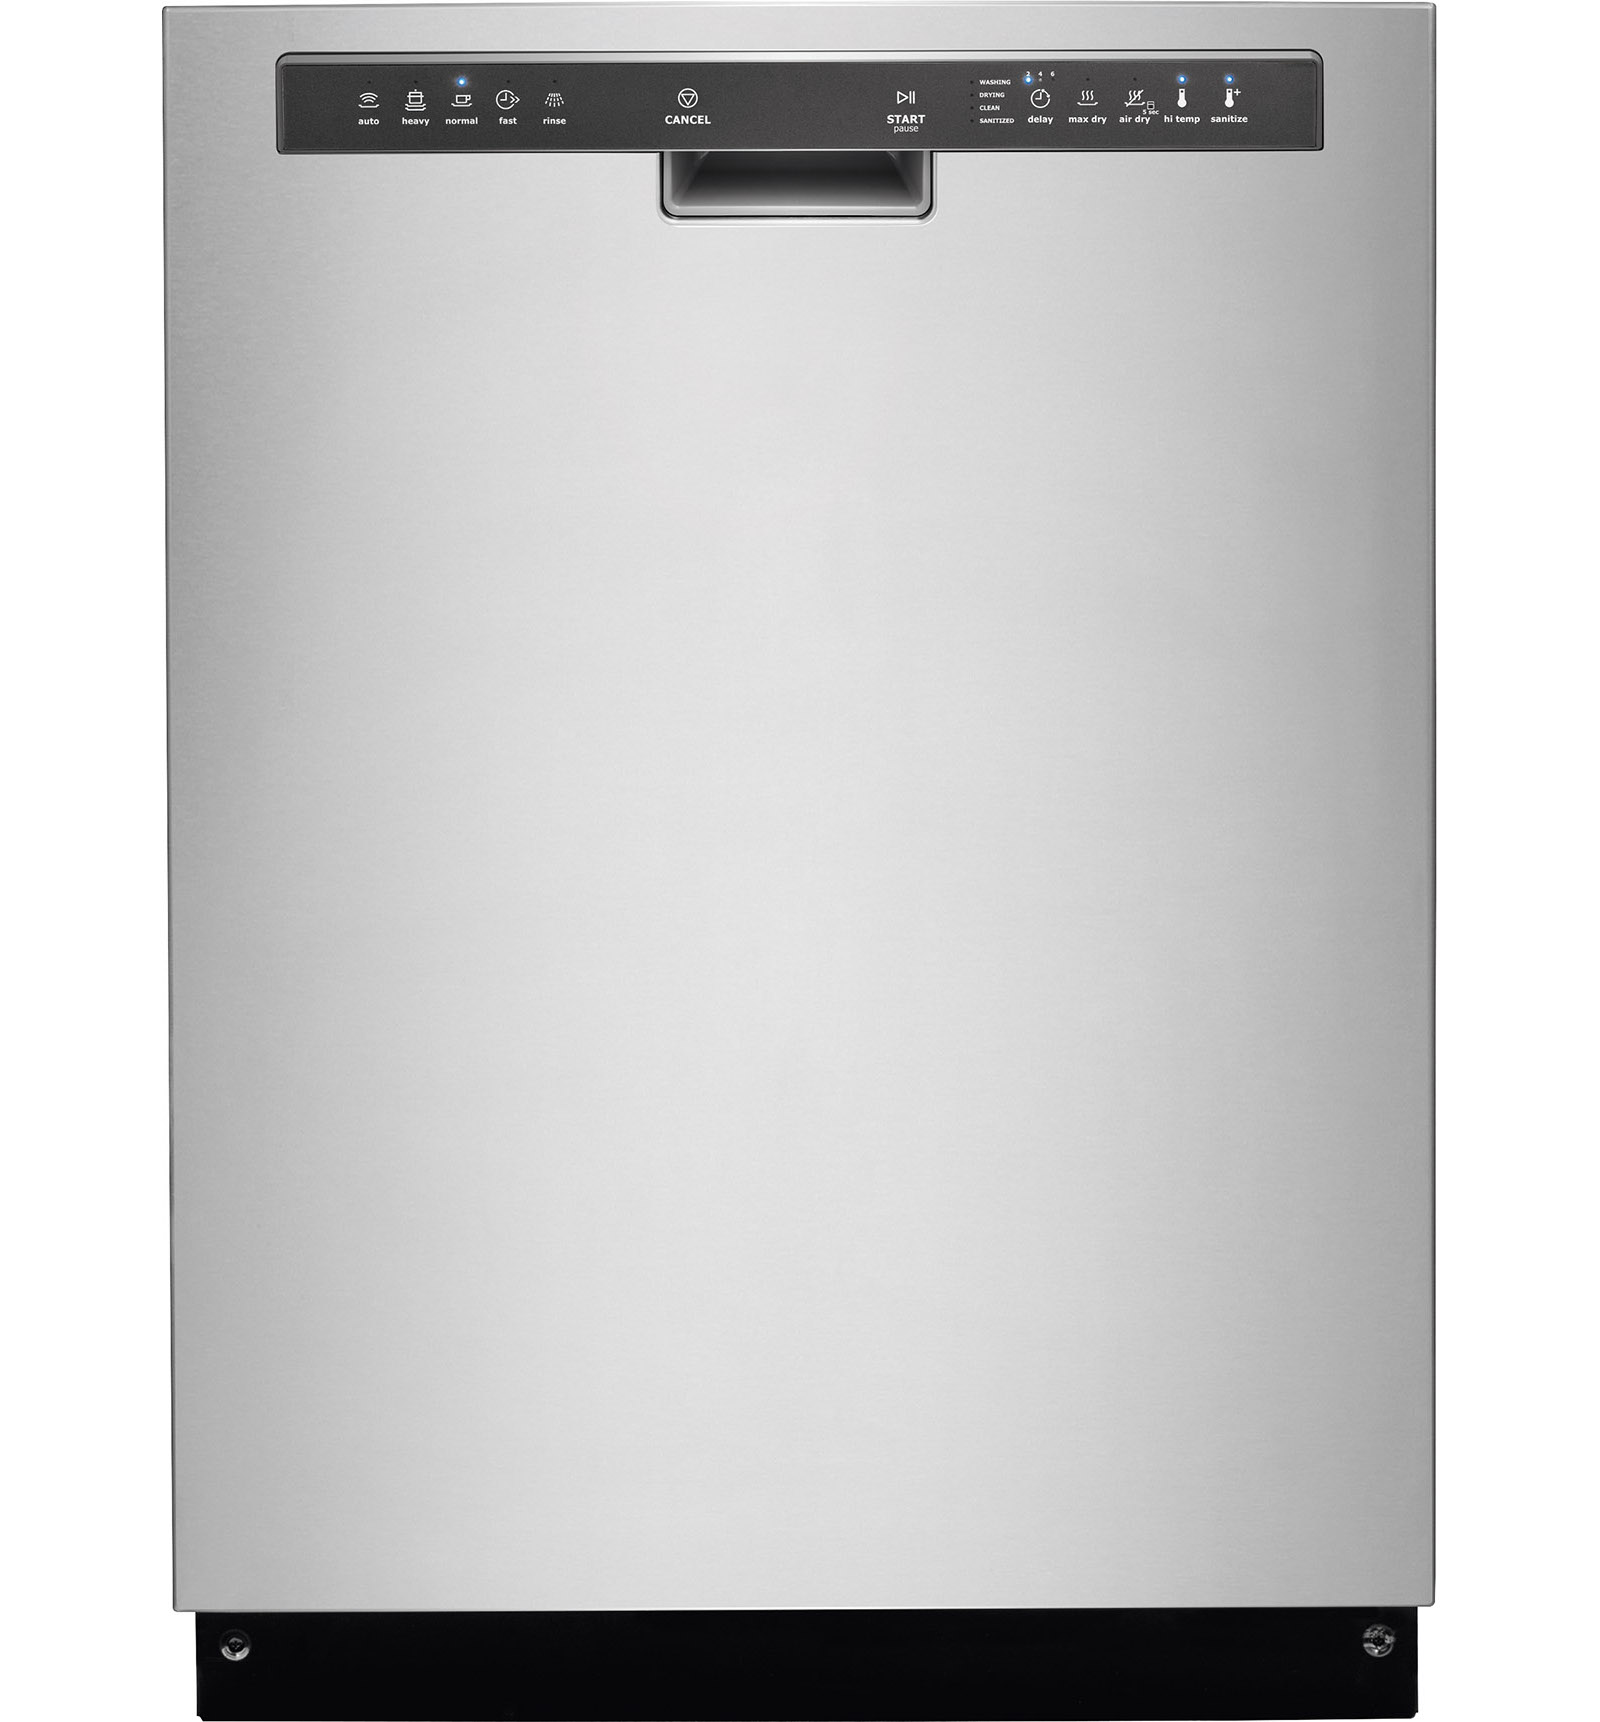 Electrolux EI24CD35RS 24 Built-In Dishwasher w/ Third Rack - Stainless Steel